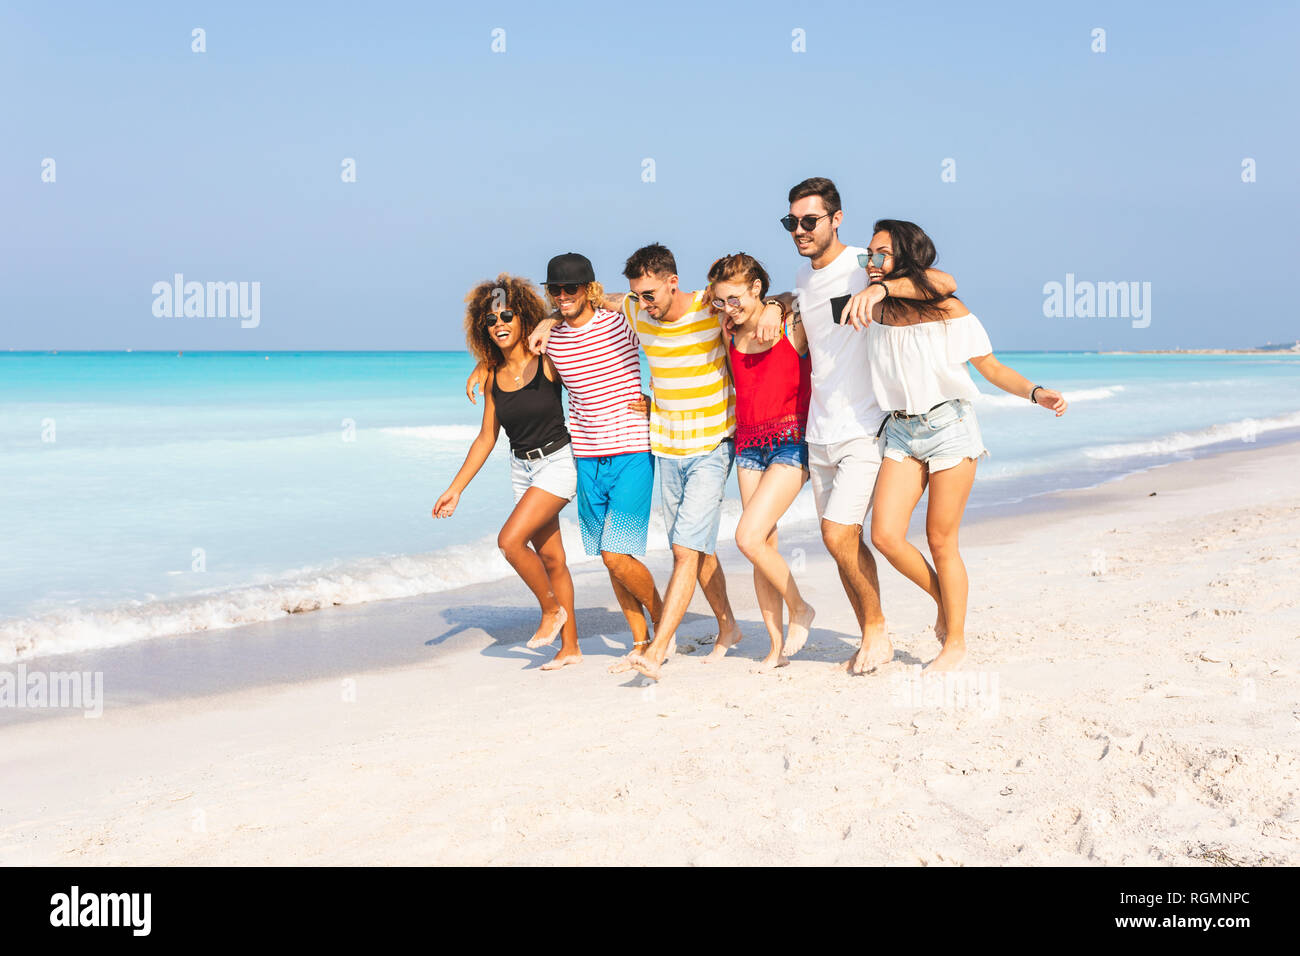 Group of friends walking on the beach - Stock Image